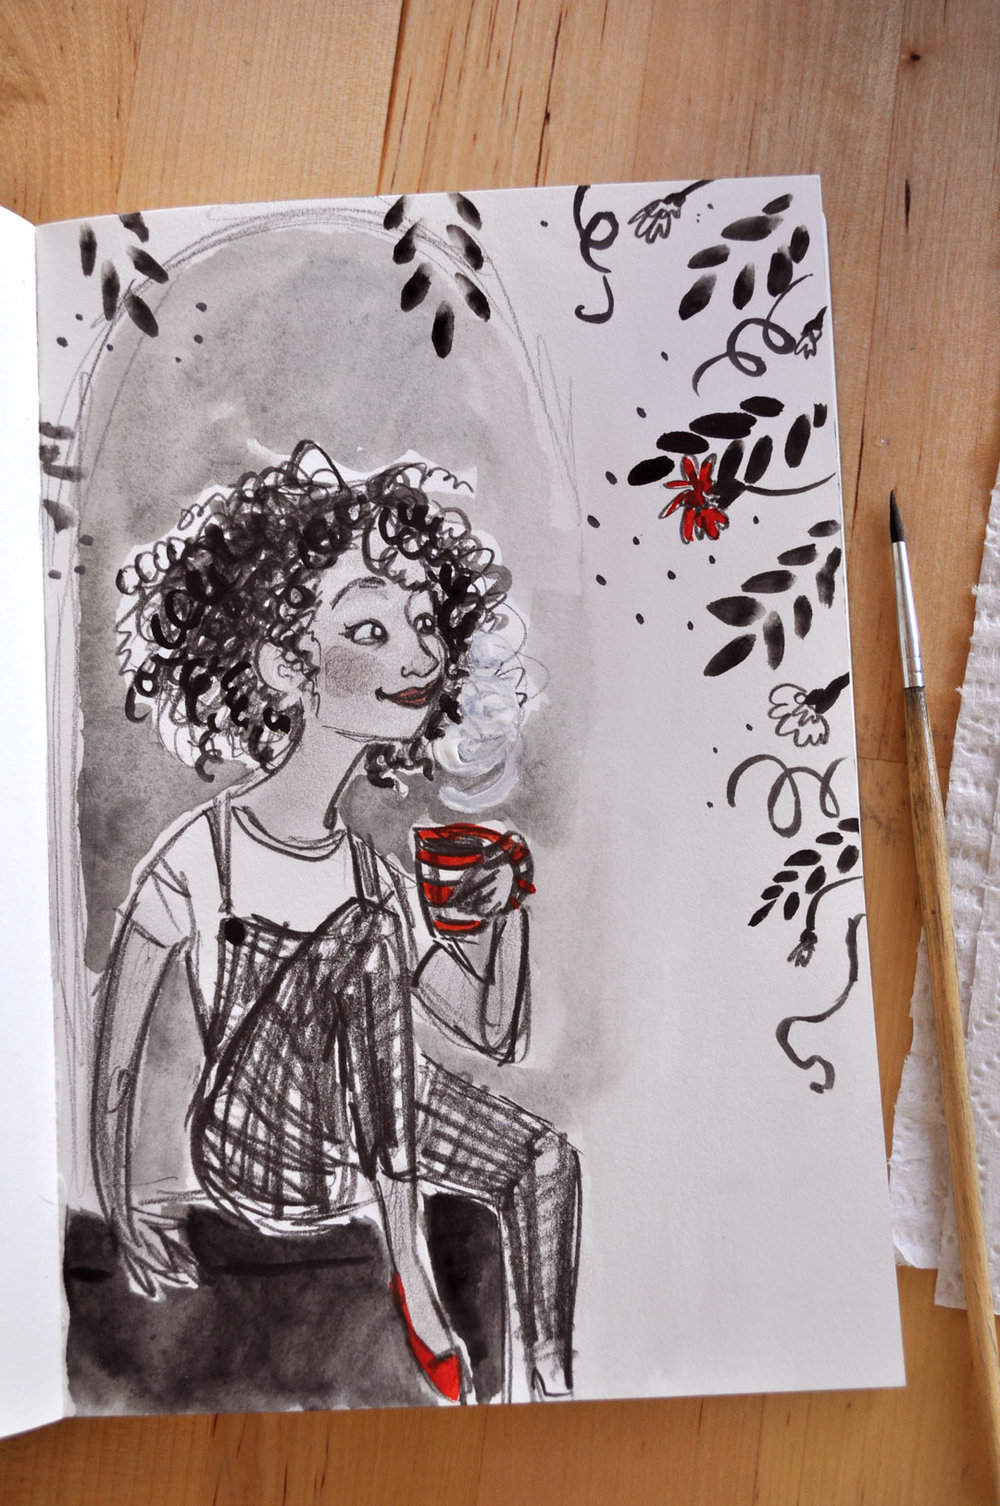 I got a little off-topic with this one, but I couldn't resist a doodle that turned into such fun curly hair! And there are plants there, so it counts...right?